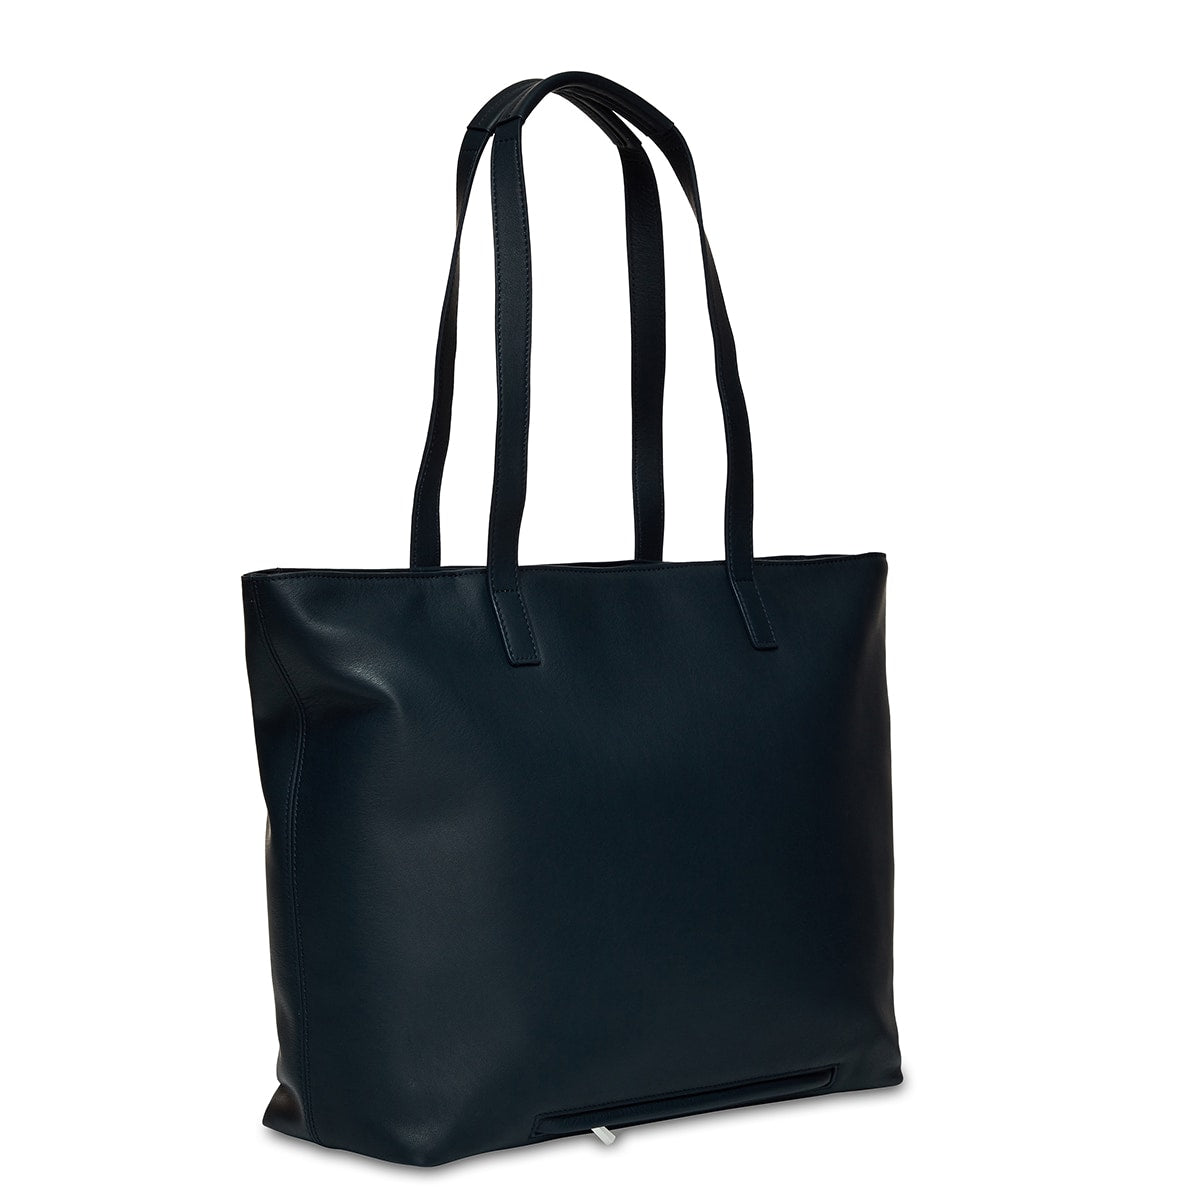 "Maddox Leather Laptop Tote Bag - 15"" -  15"" 